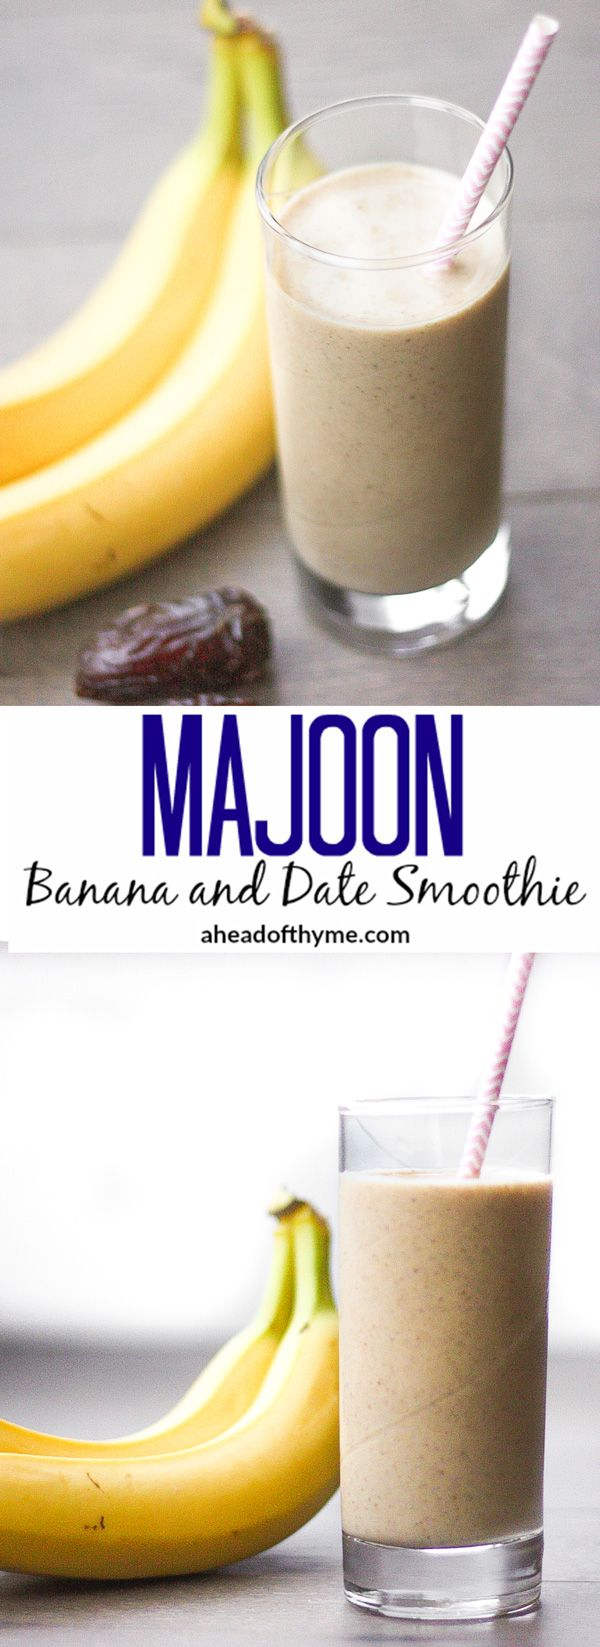 Majoon (Banana and Date) Smoothie: This all-natural energy drink is made with bananas, dates and nuts. It is perfect for breakfast or a post-workout snack | aheadofthyme.com via @aheadofthyme